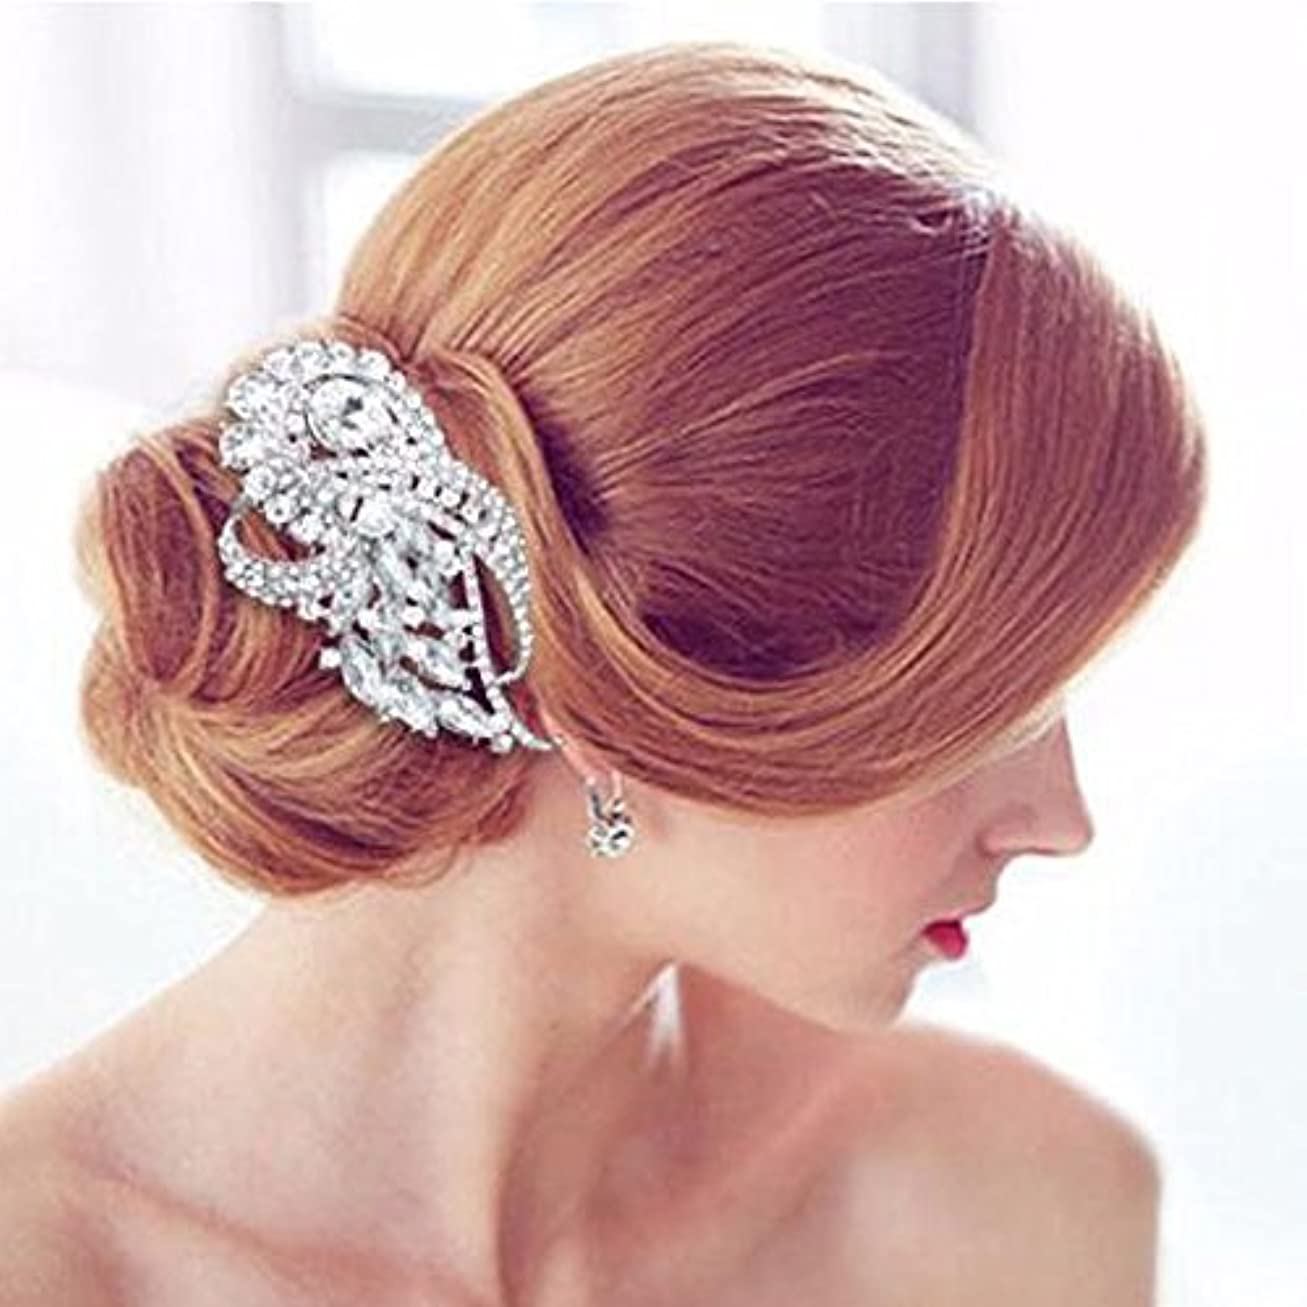 ロビー類似性年金受給者Missgrace Bridal Rhinestone Hair Comb Bridesmaid Wedding Vintage Hair Comb Women Crystal Hair Clip Headpiece for...